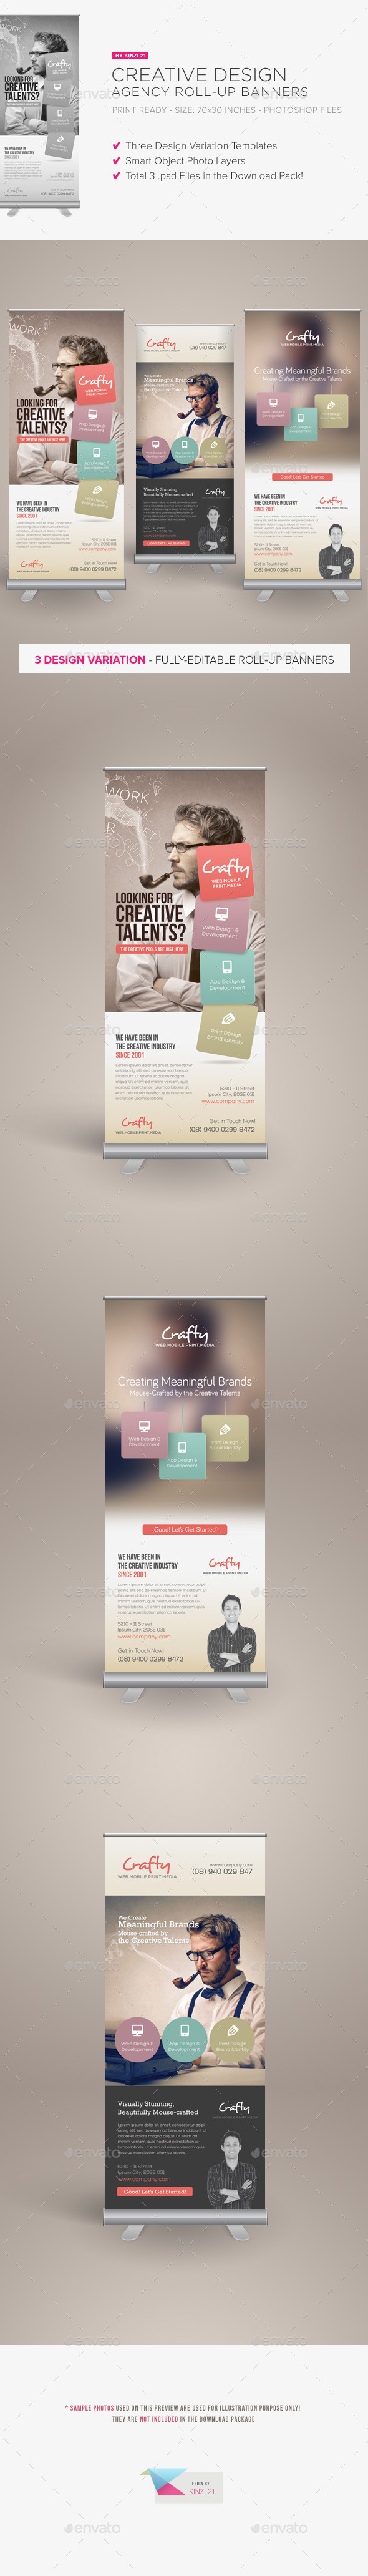 Creative Design Agency Roll-up Banners - Signage Print Templates